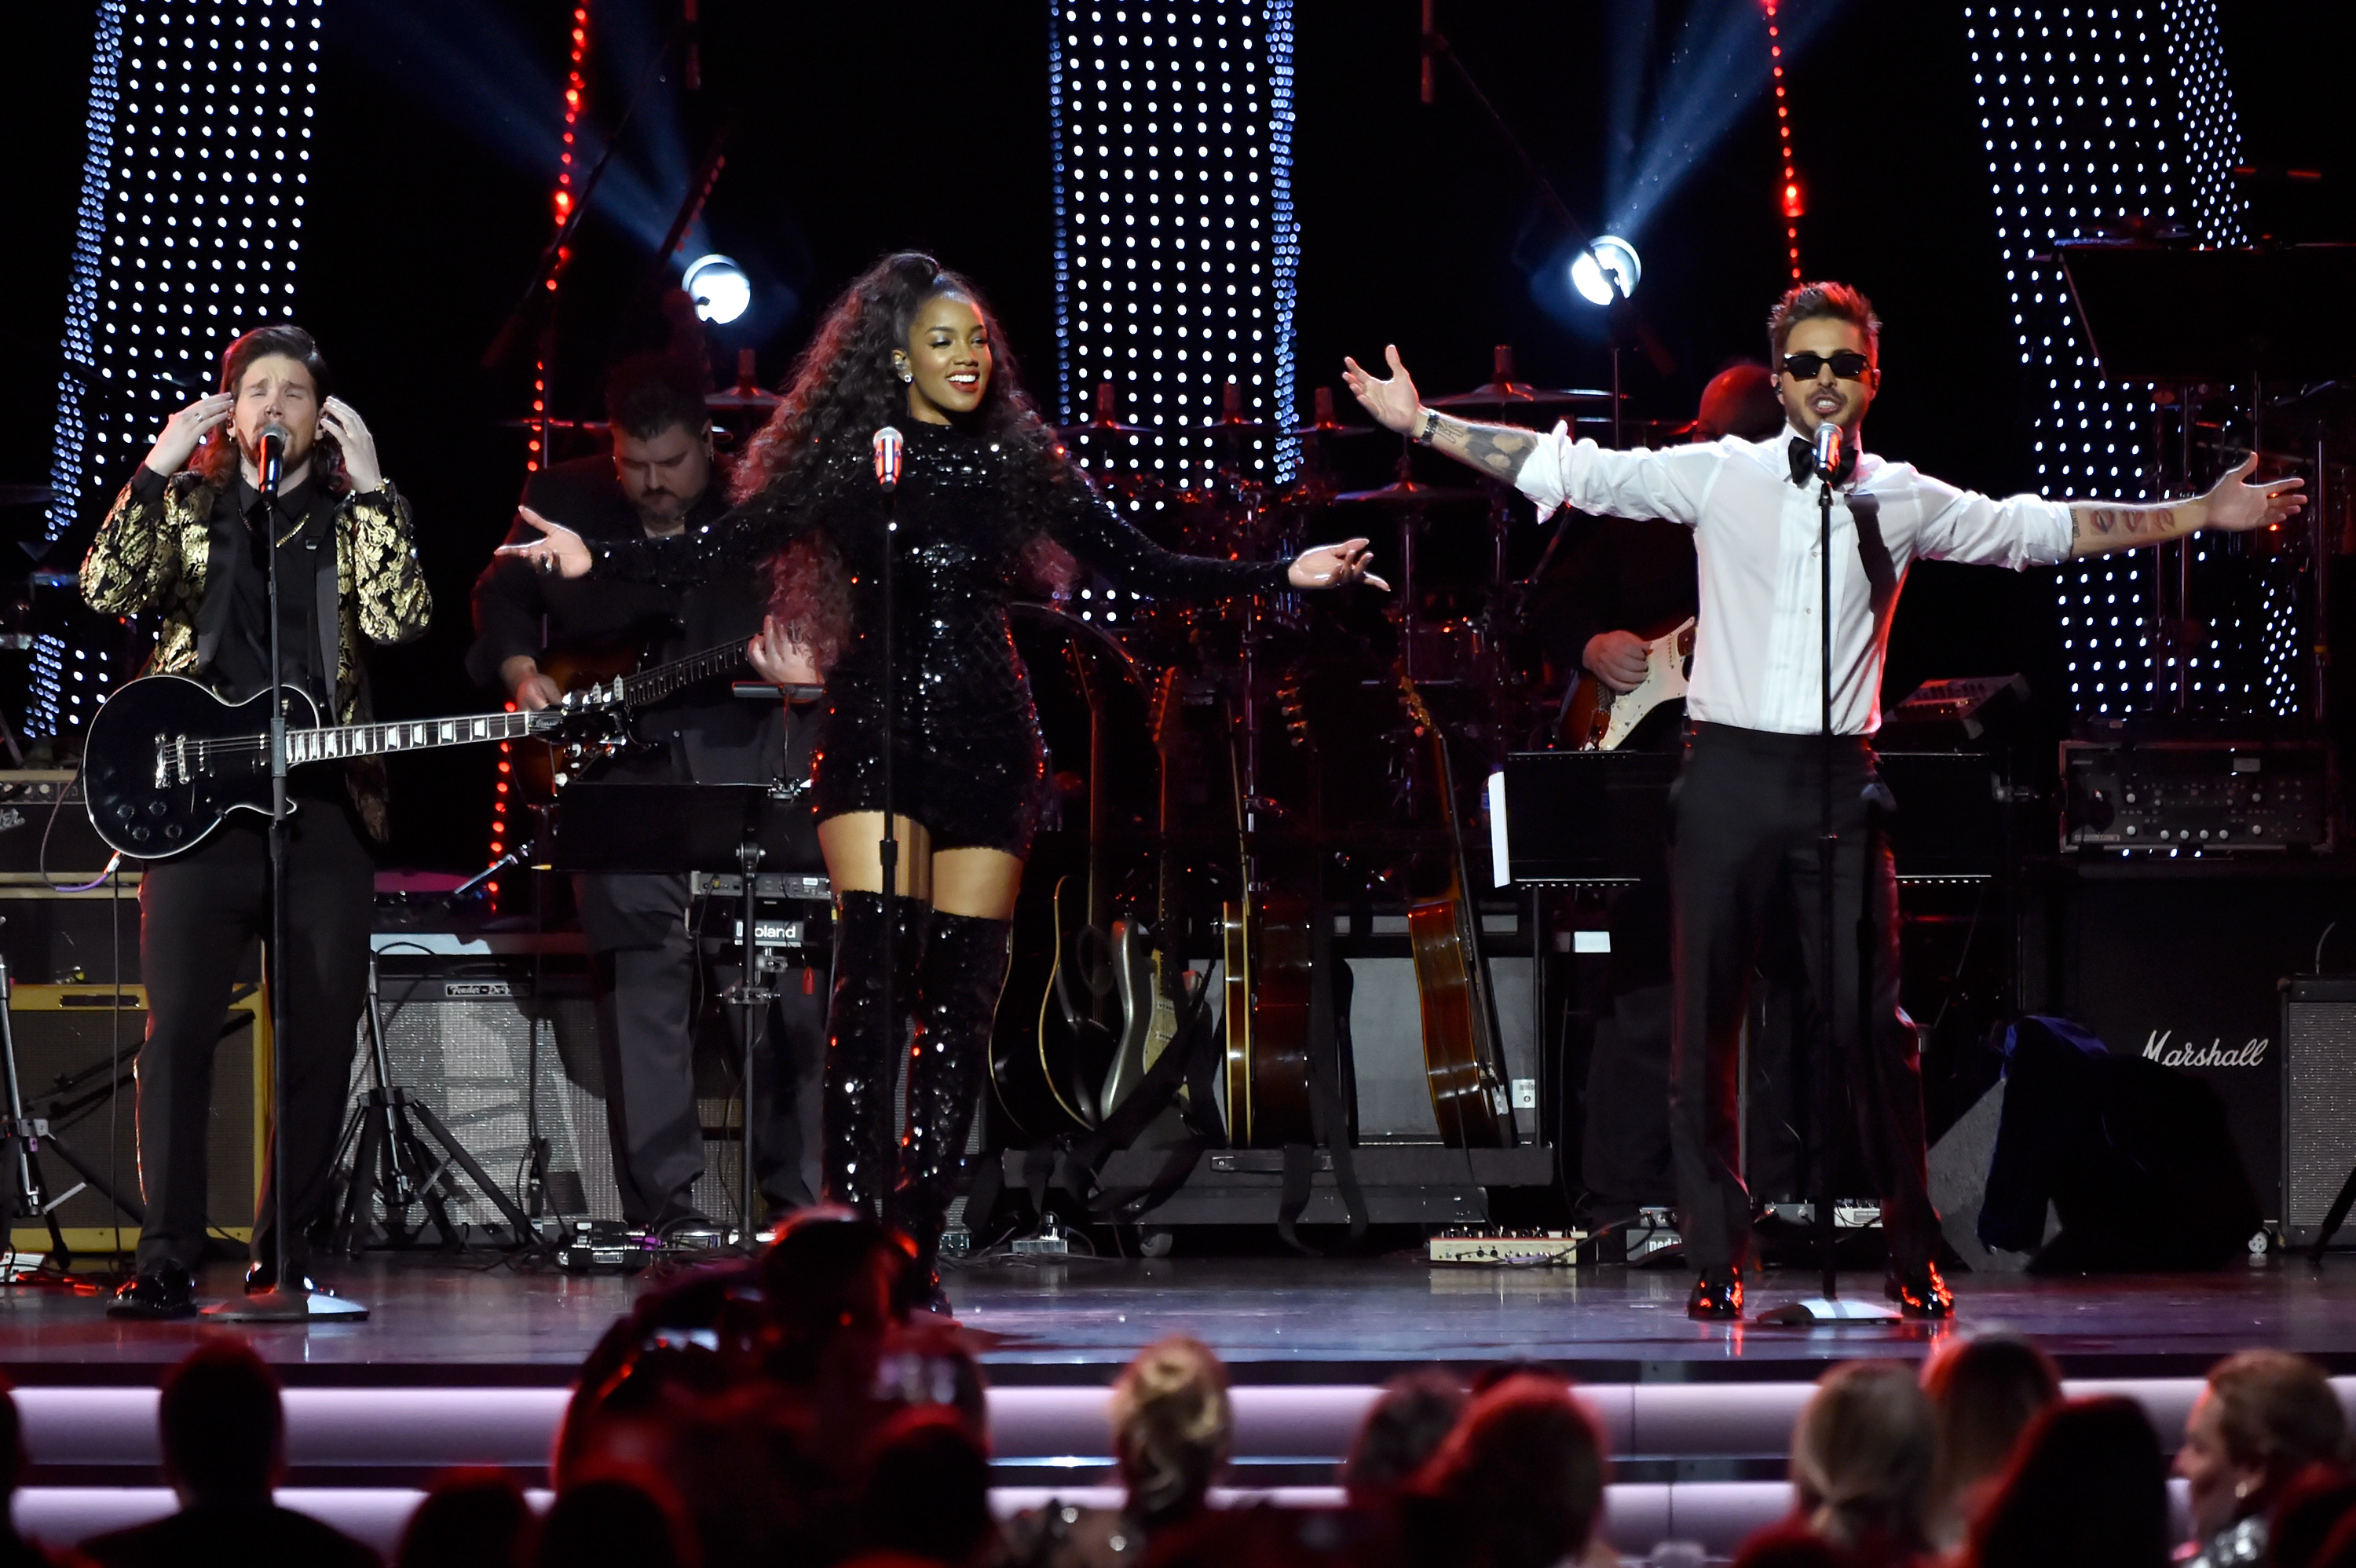 the-19th-annual-latin-grammy-awards-person-of-the-year-gala-honoring-mana-show-4